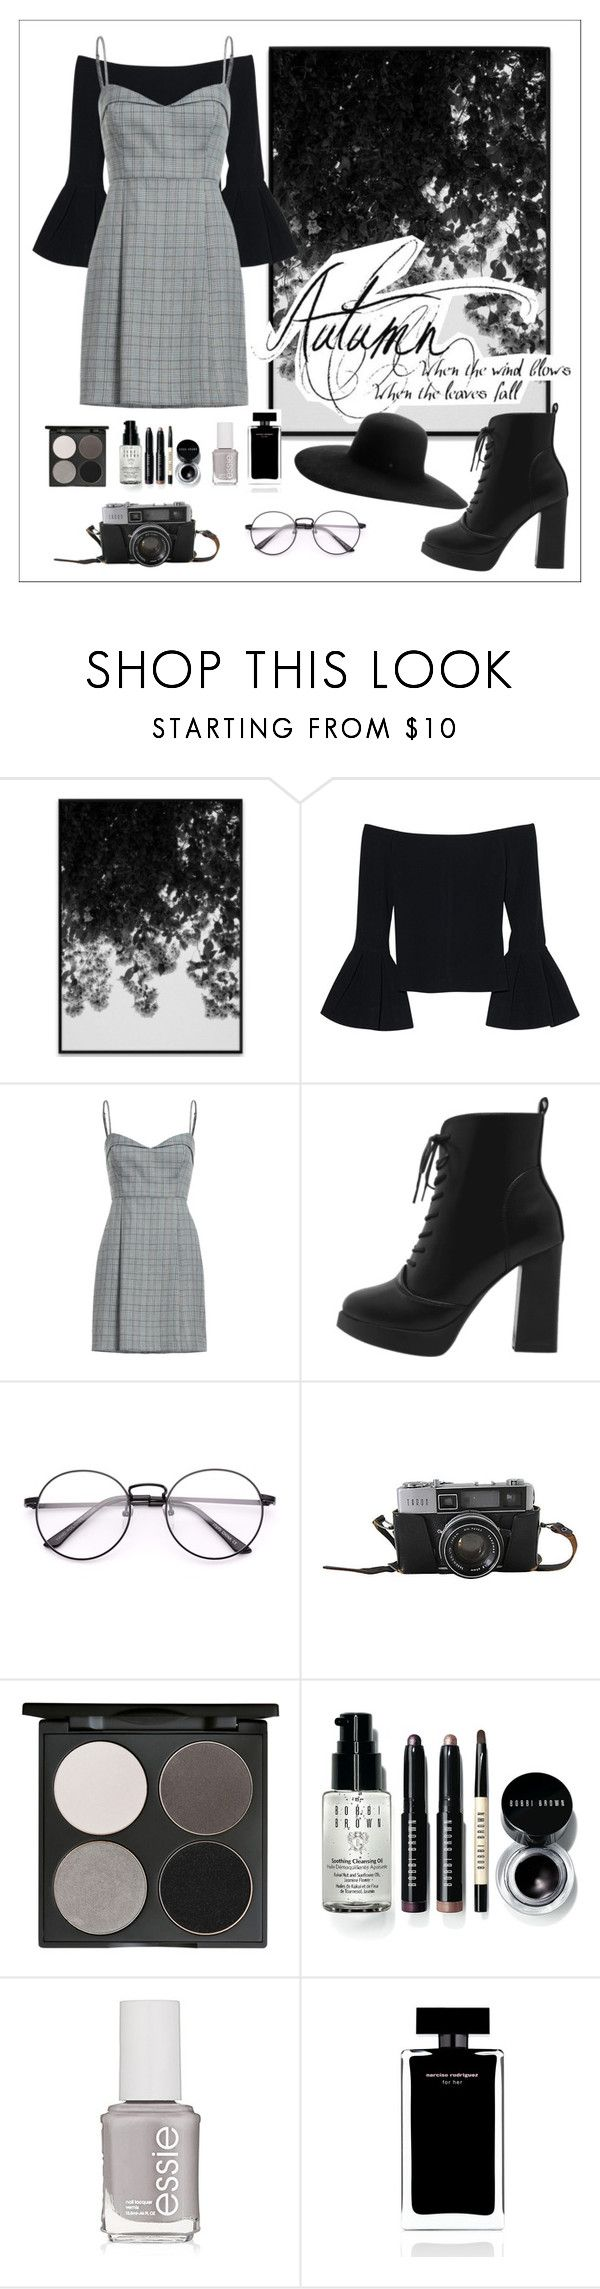 """""""Untitled #151"""" by fashiondesignlove ❤ liked on Polyvore featuring Alexis, Gorgeous Cosmetics, Bobbi Brown Cosmetics, Essie, Narciso Rodriguez and Maison Michel"""